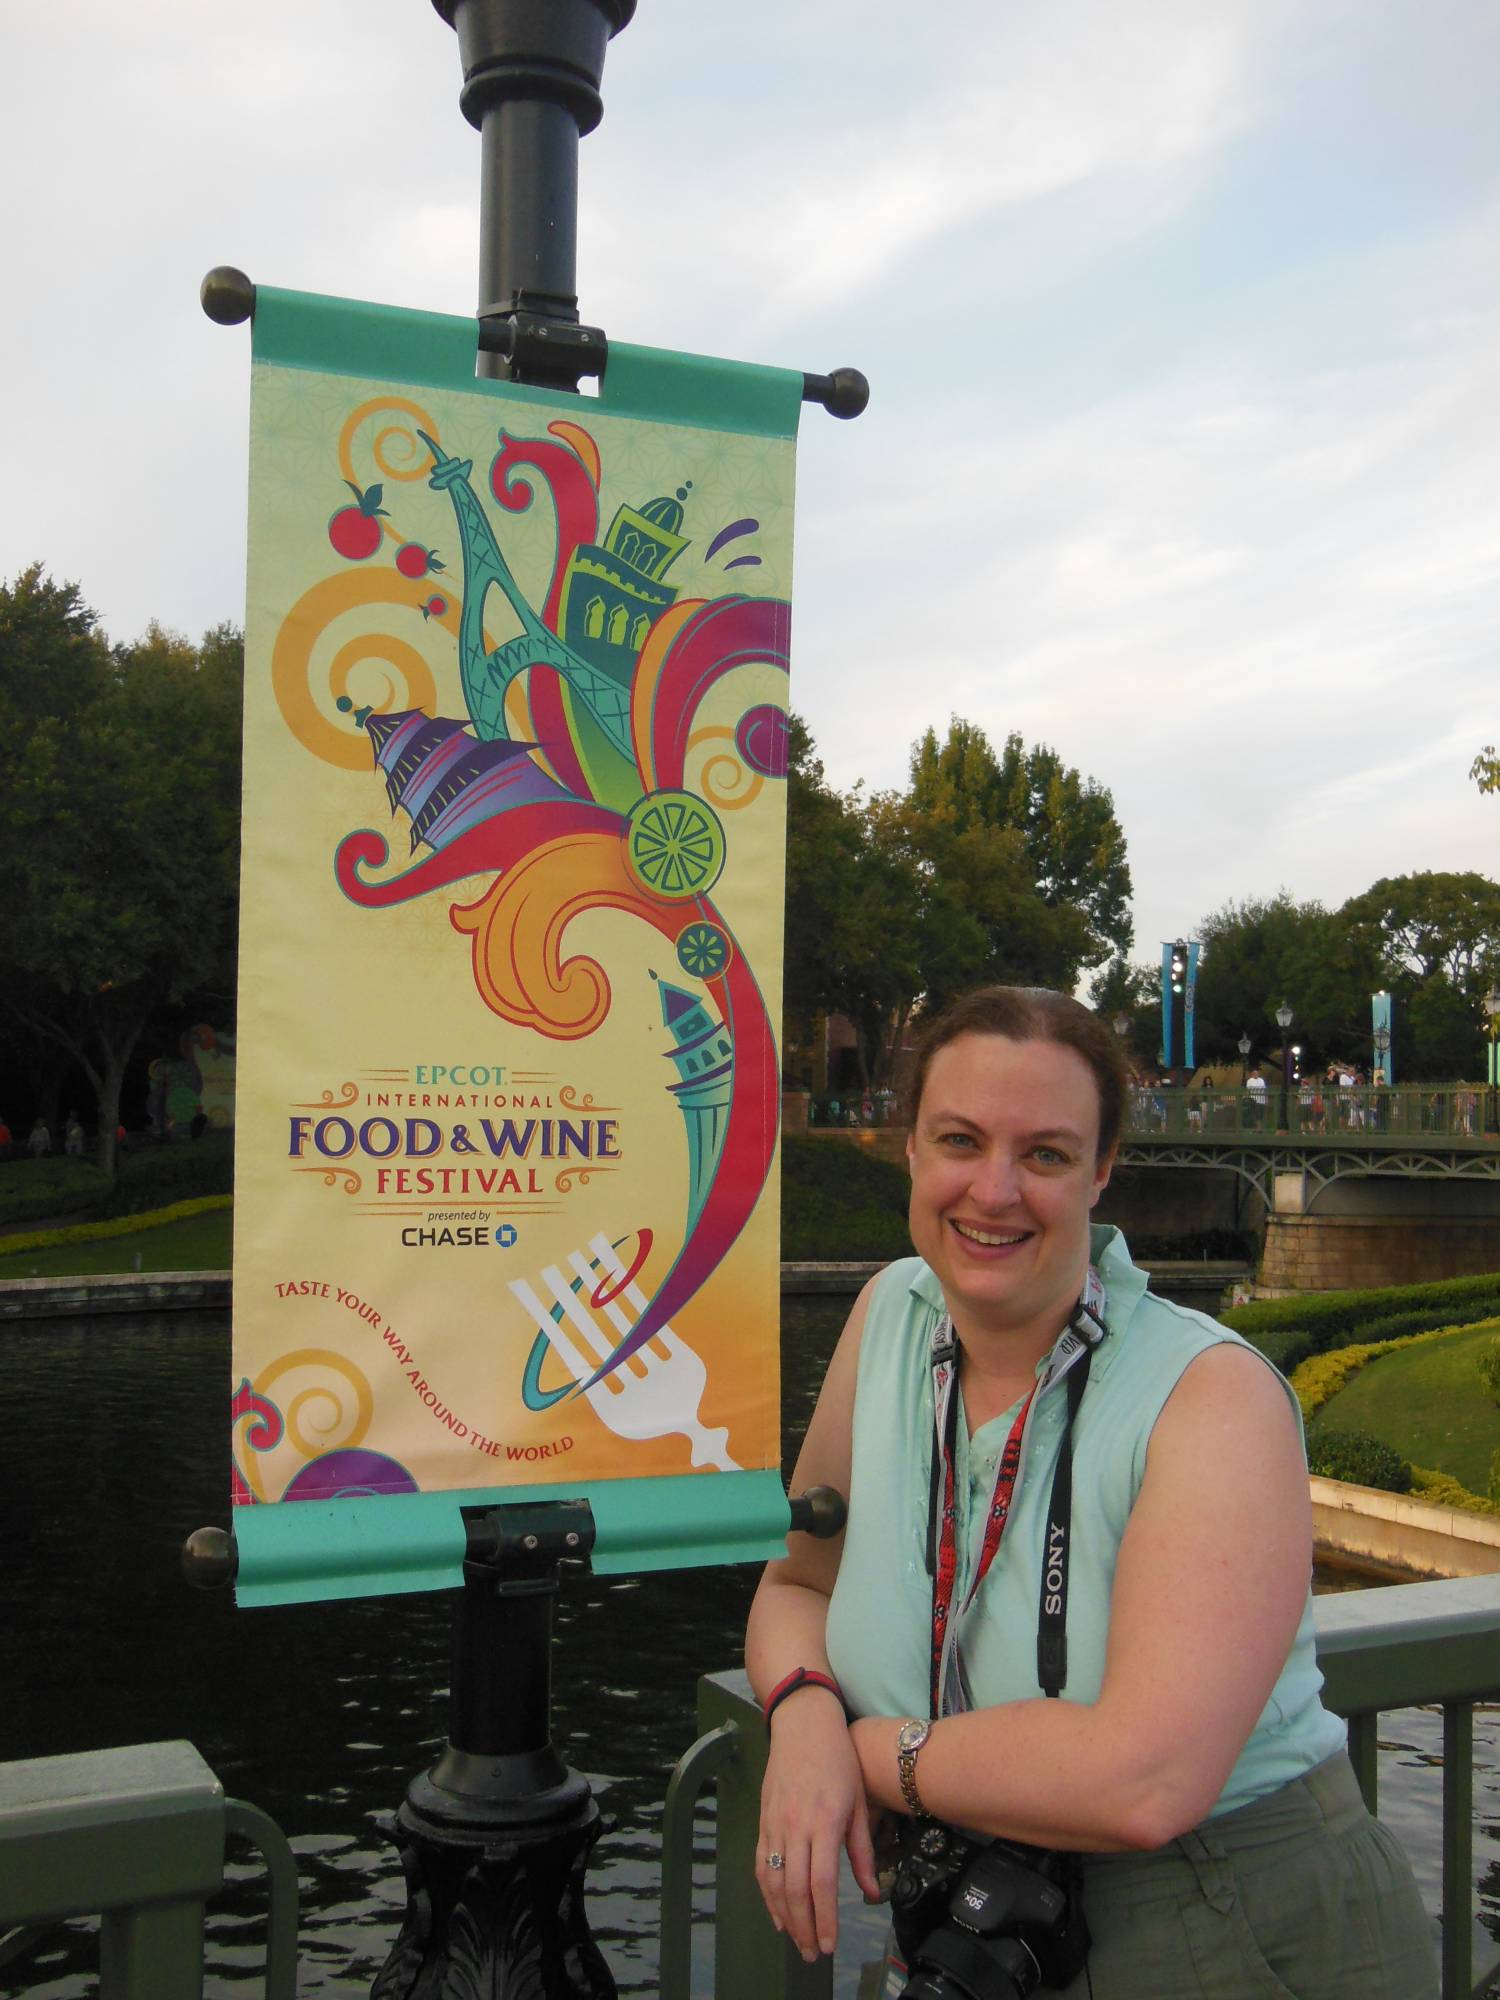 Cheryl Pendry shares the Lessons Learned on her last trip to Walt Disney World |PassPorter.com